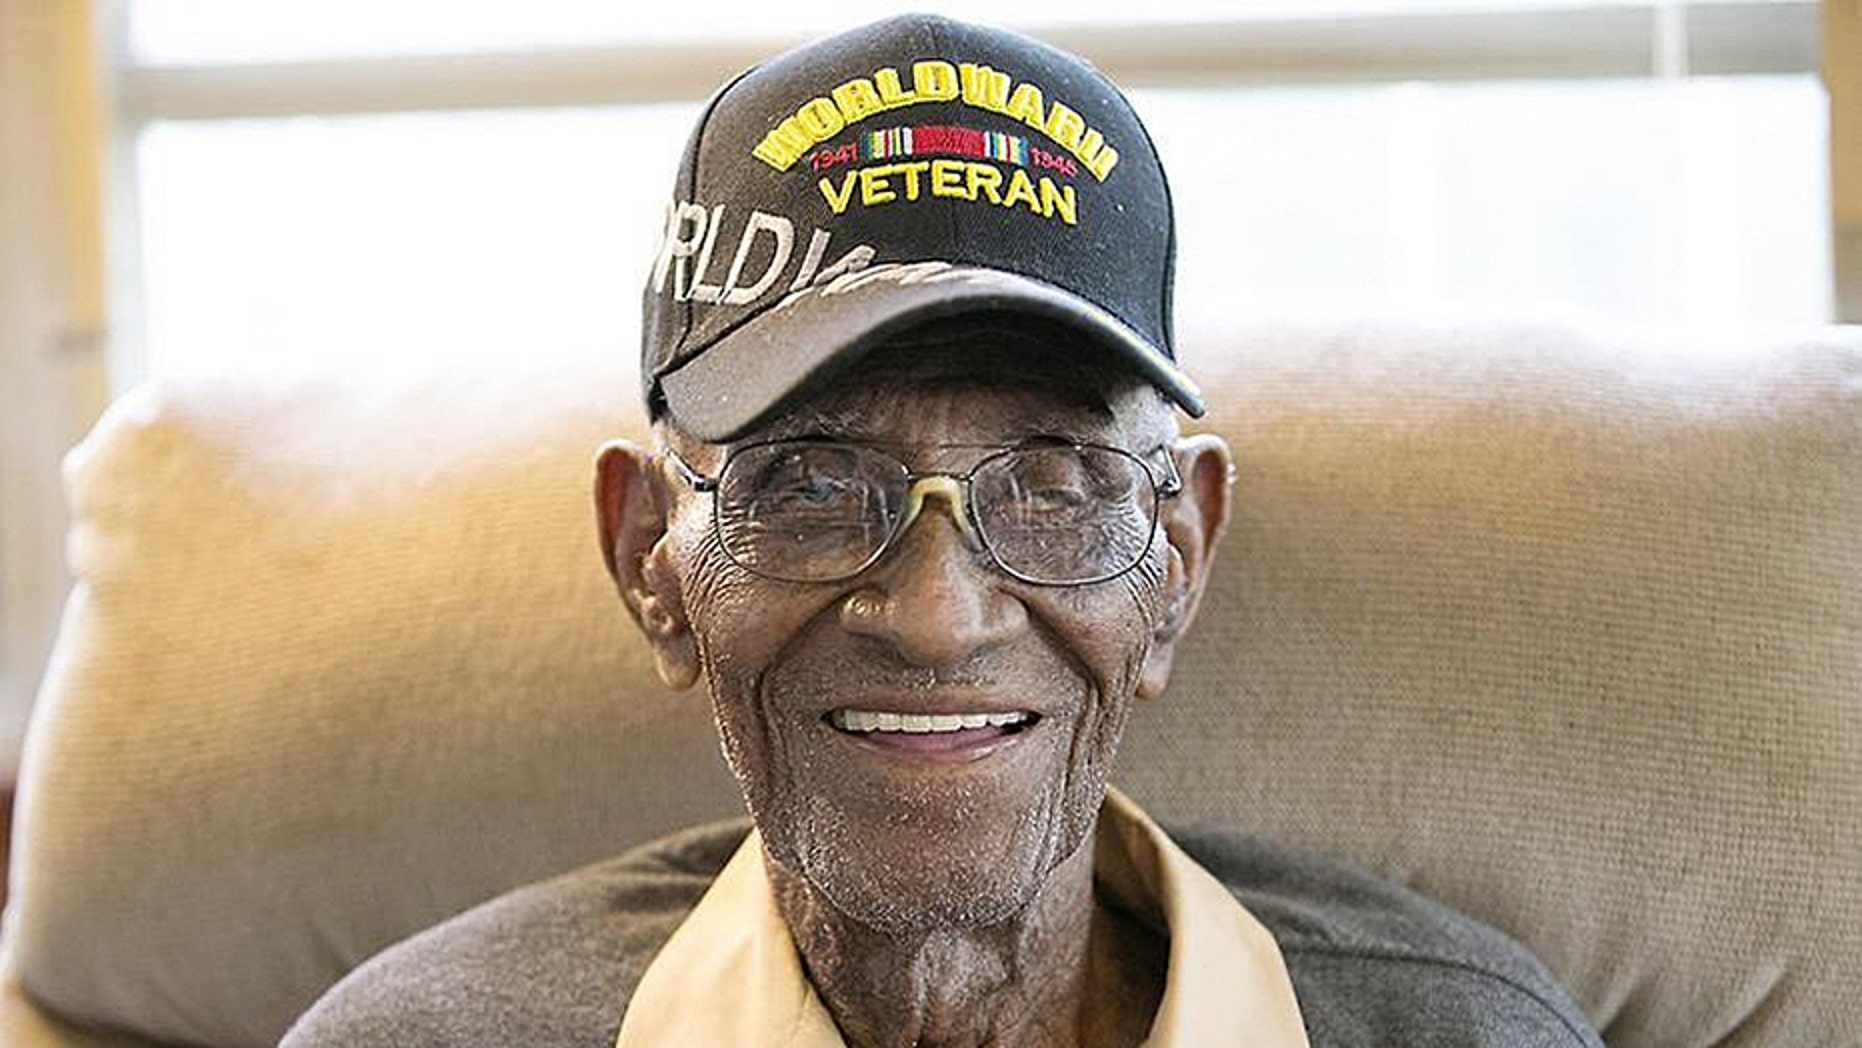 The country's oldest WWII veteran, who turns 112 next month, got a surprise ride on a private jet to visit the National Museum of African American History and Culture.